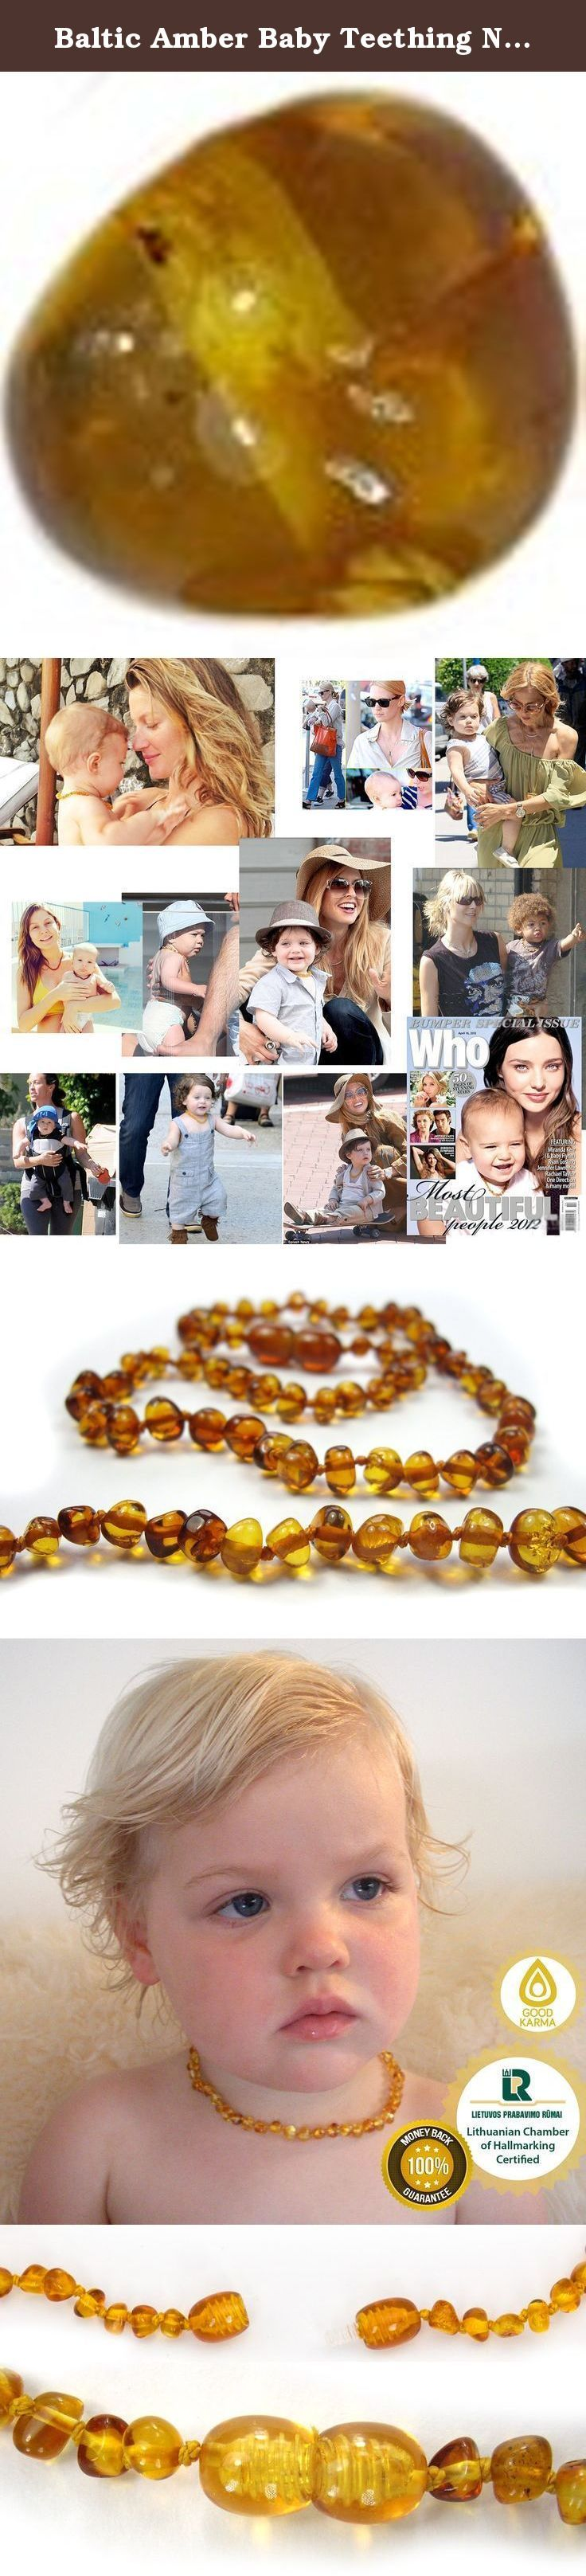 Baltic Amber Baby Teething Necklace - STOCK CLEARANCE - Honey 12.5 Inch Approx. We have The Secret to curing teething pain for babies. Does your baby cry with pain while teething. Do they suffer with a fever, red cheeks and lots of dribble? Your Baby can wear a Baltic Amber Teething Necklace to ease their pain while getting baby teeth. Baltic Amber is effective due to it's its high content of succinic acid. Succinic acid is a natural pain reliever, anti-inflammatory, and central nervous...